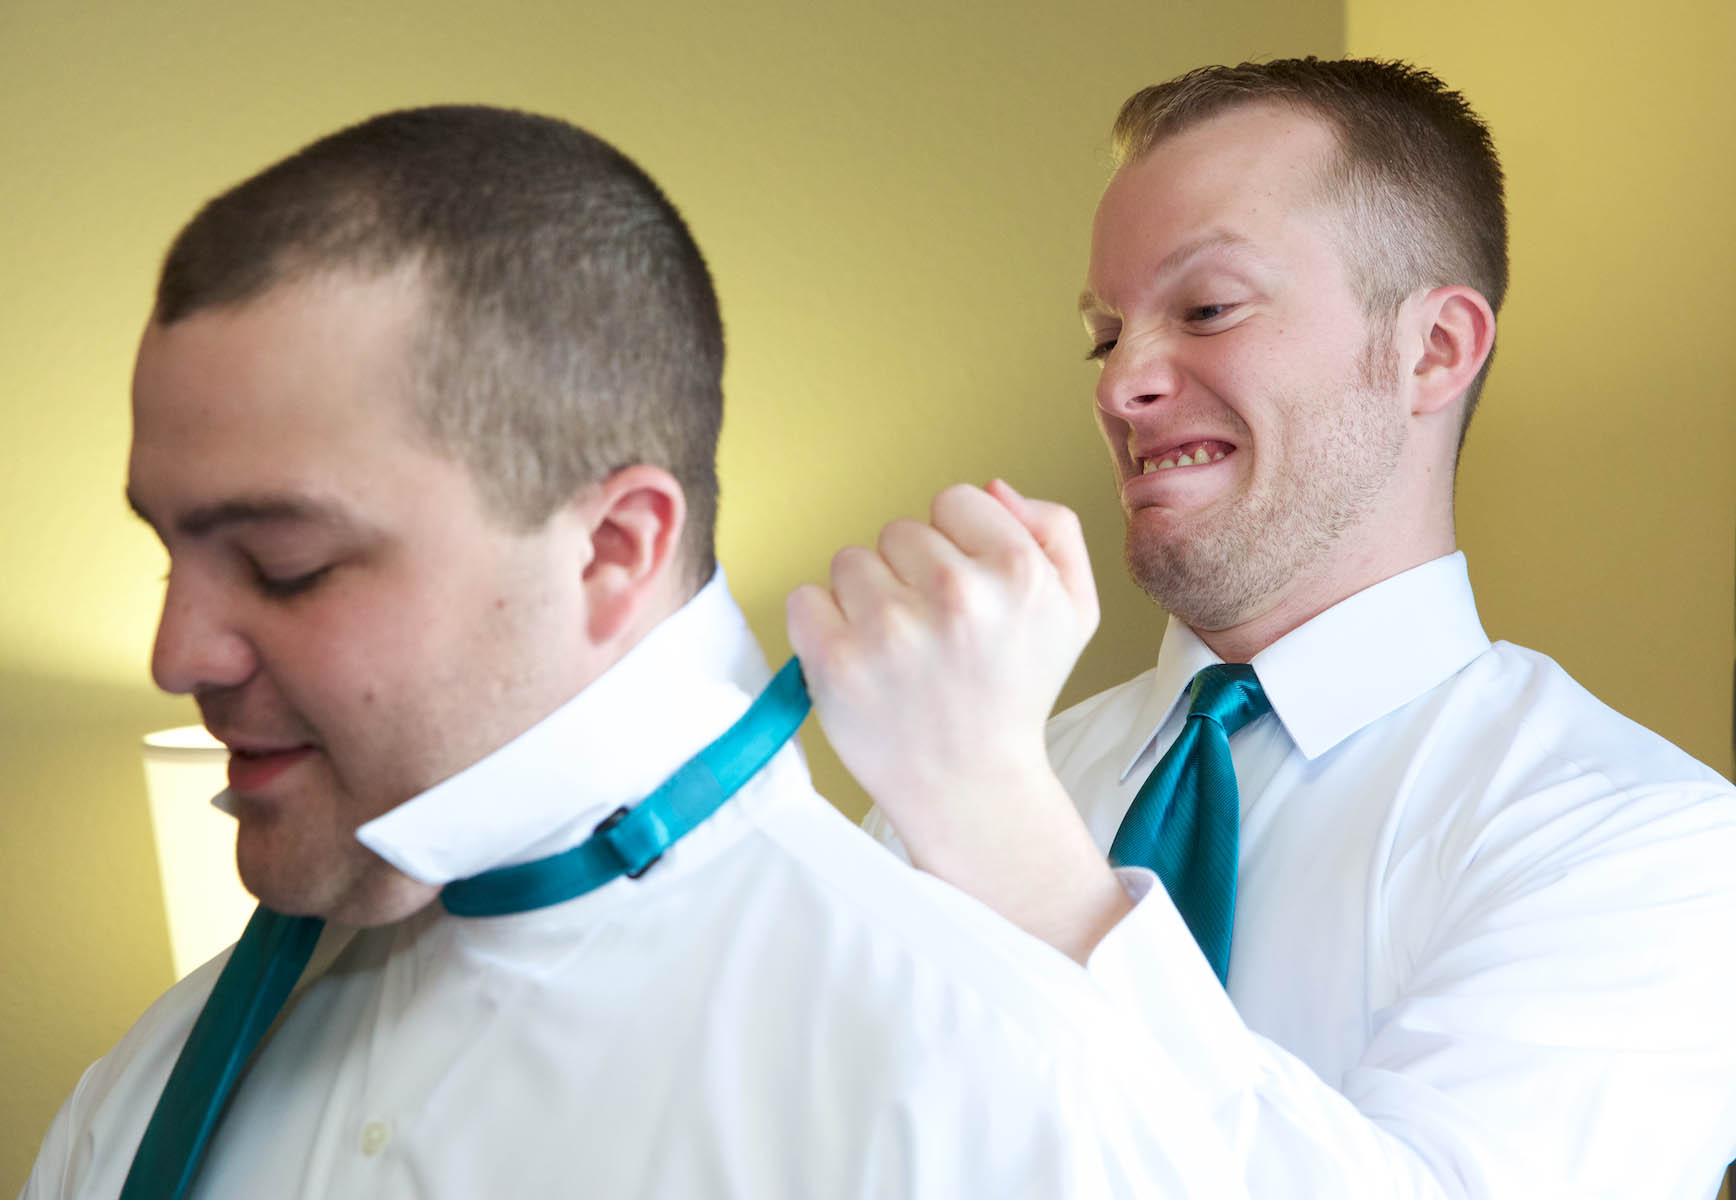 Ben has fun while helping Sam, his brother and best man, as the men get ready at the Hampton Inn, Jacksonville. Wedding pictures by Tiffany & Steve of Warmowski Photography.